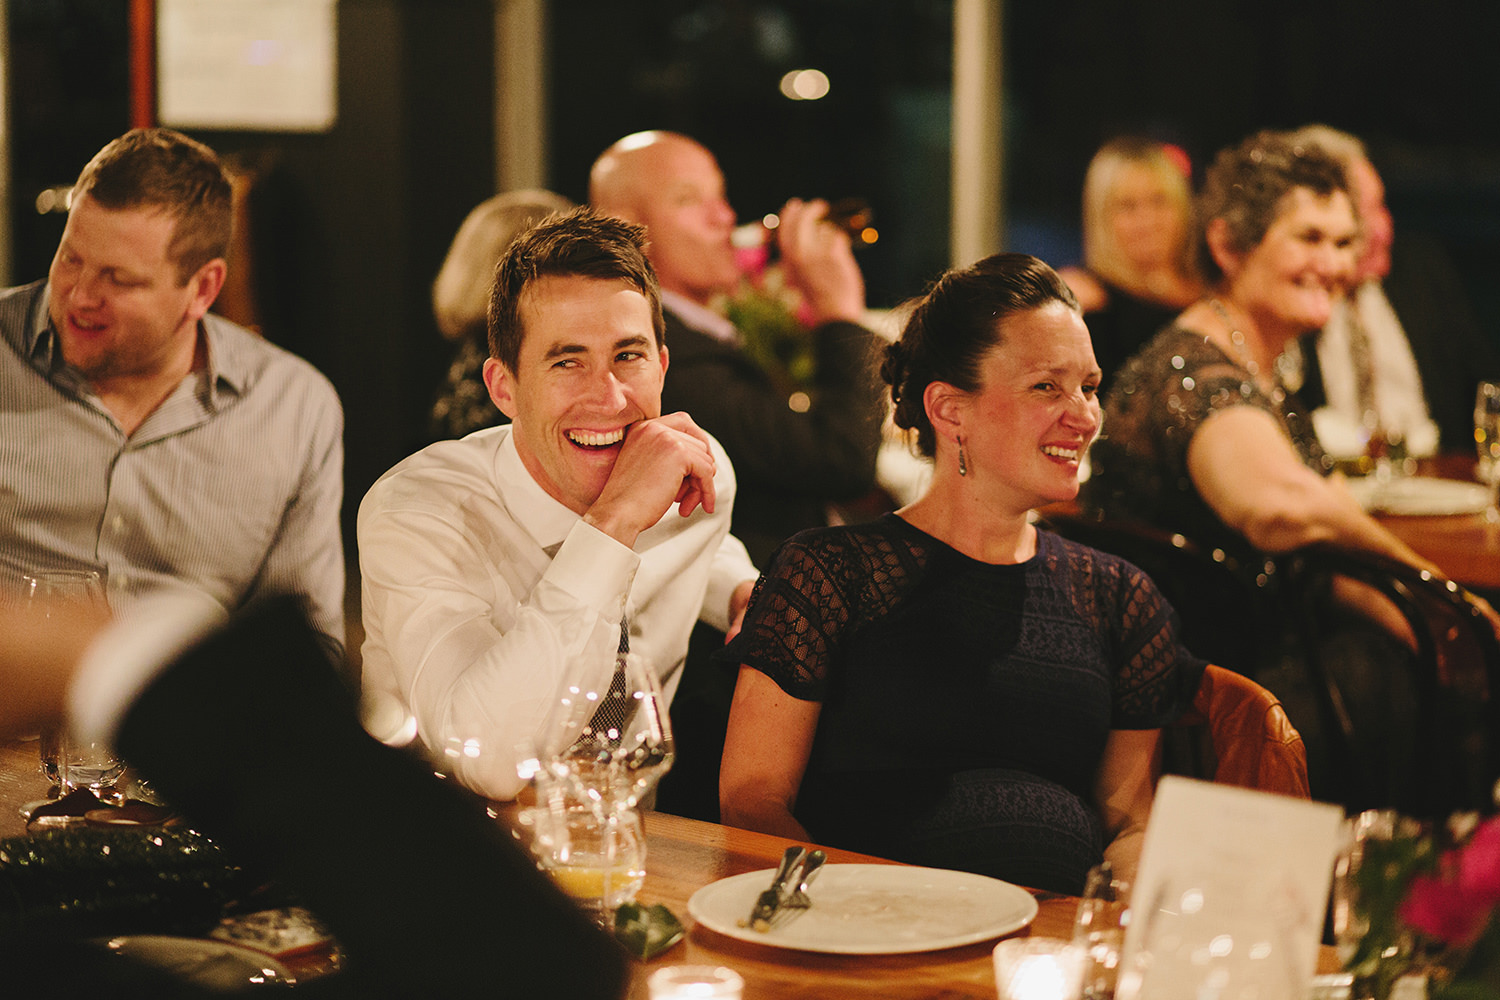 Melbourne_Winery_Wedding_Chris_Merrily144.JPG